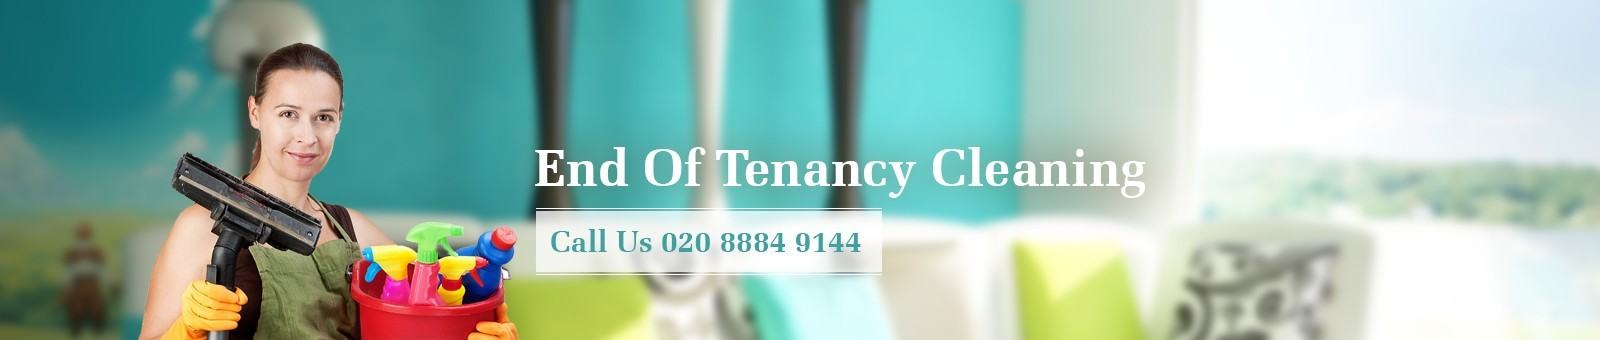 End of Tenancy Cleaning Slide